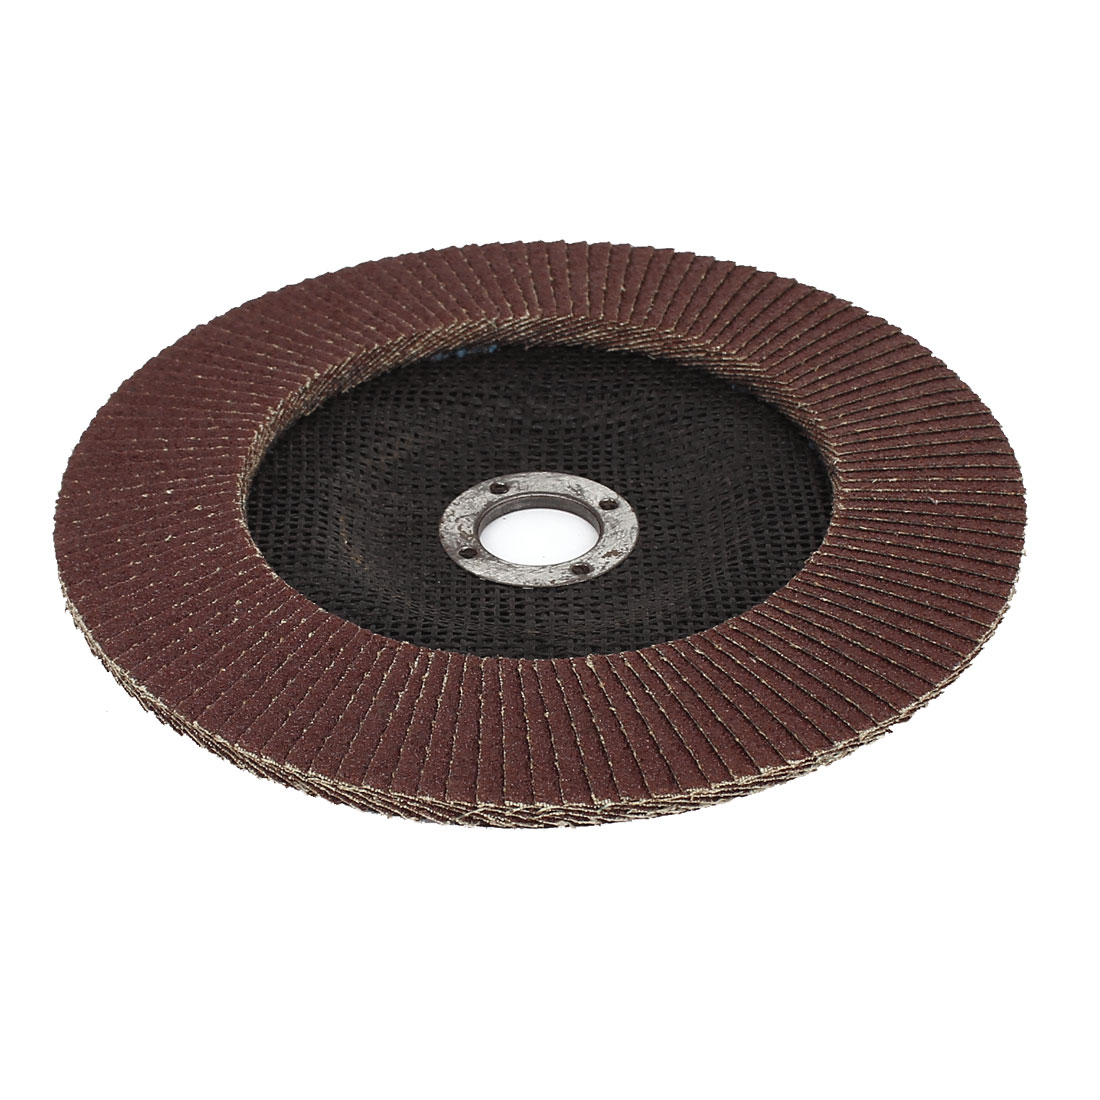 "180mm 7"" Dia 22mm Inner Hole 80 Grit Flap Sanding Disc Wheel for Angle Grinder - image 2 of 2"